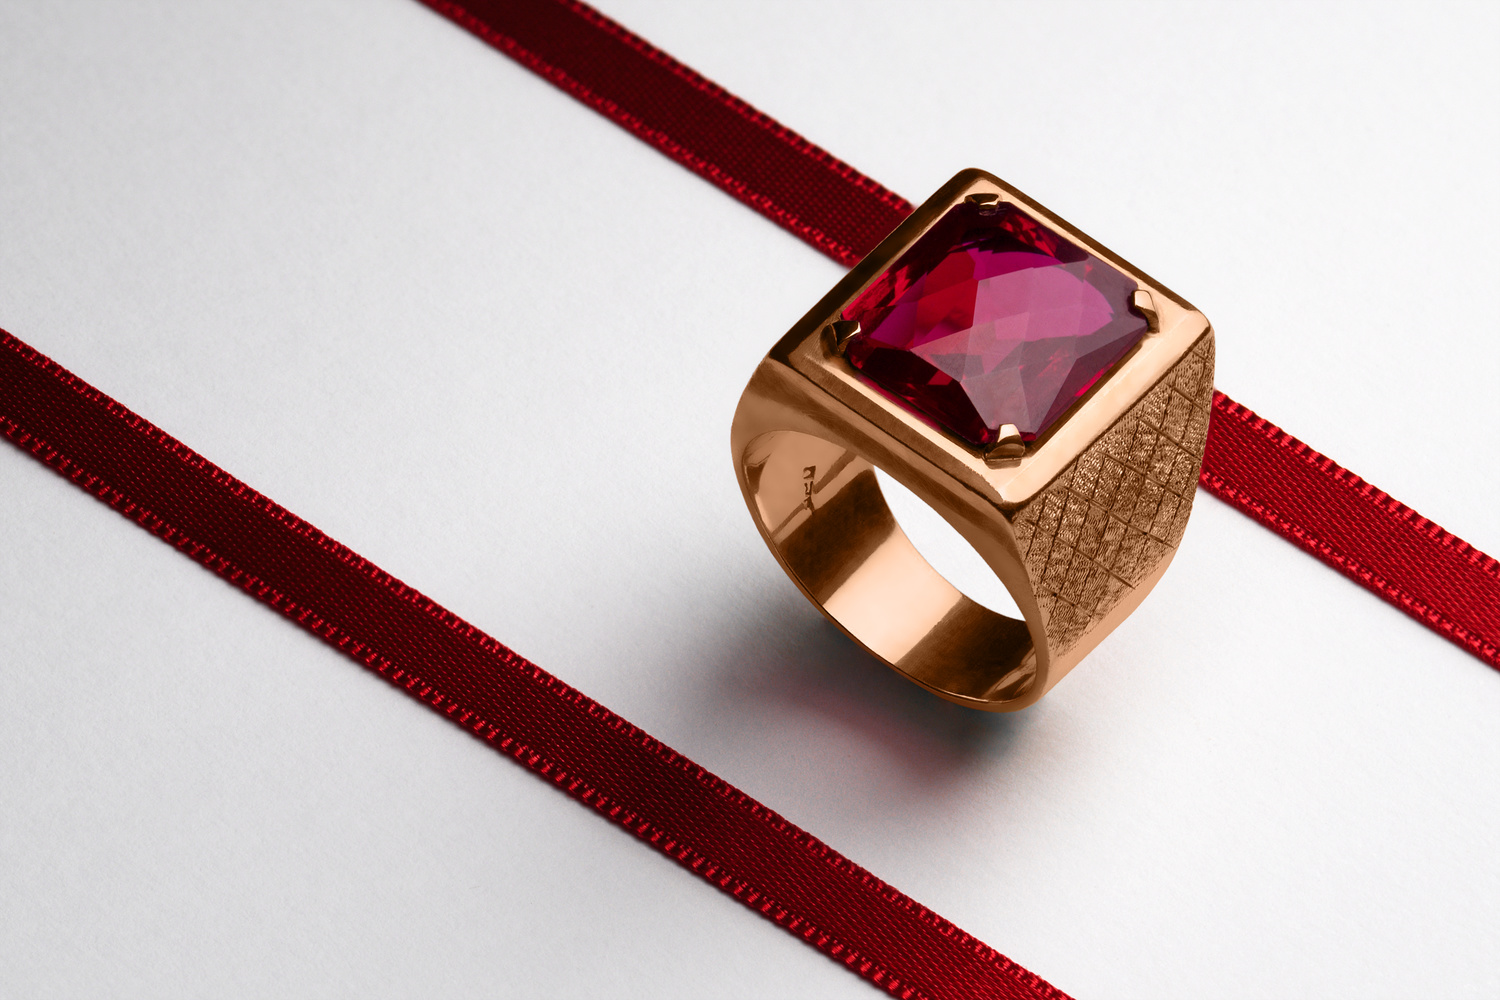 Vintage Rose Gold Ruby Ring by Stefano Barcella